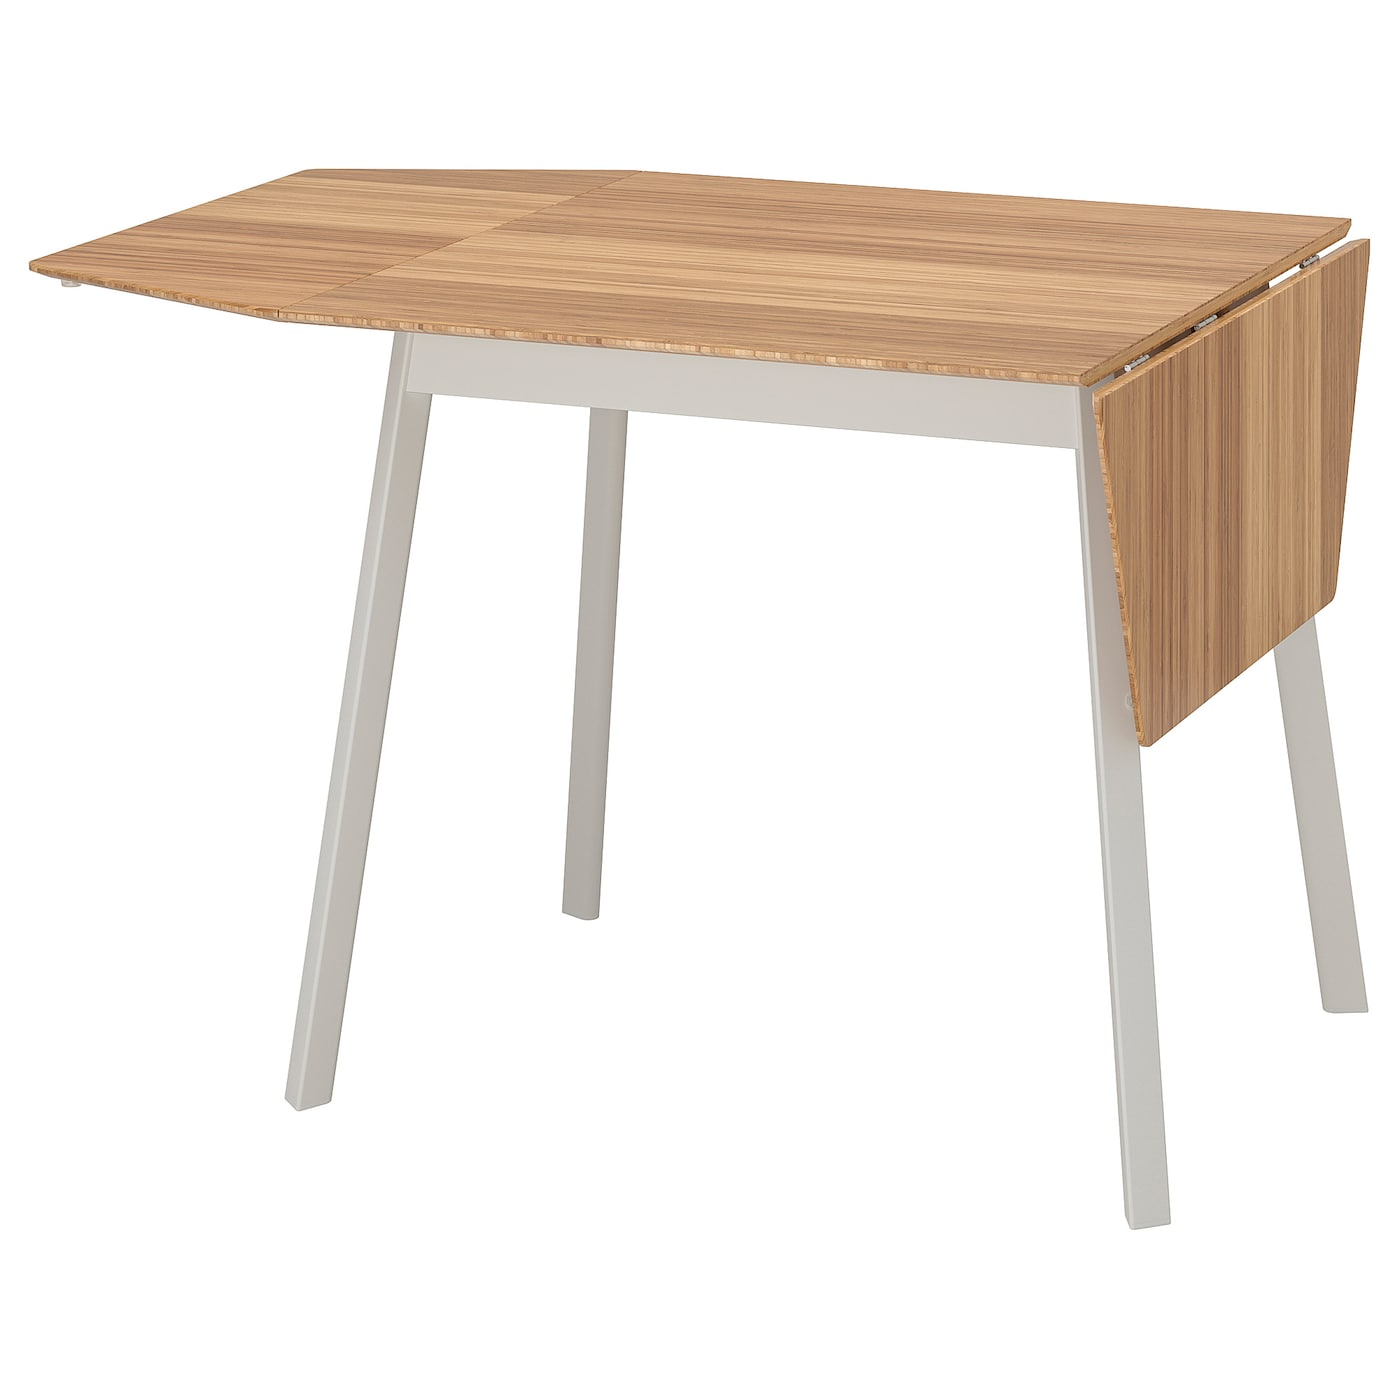 - IKEA PS 2012 Drop-leaf Table, Bamboo, White - IKEA